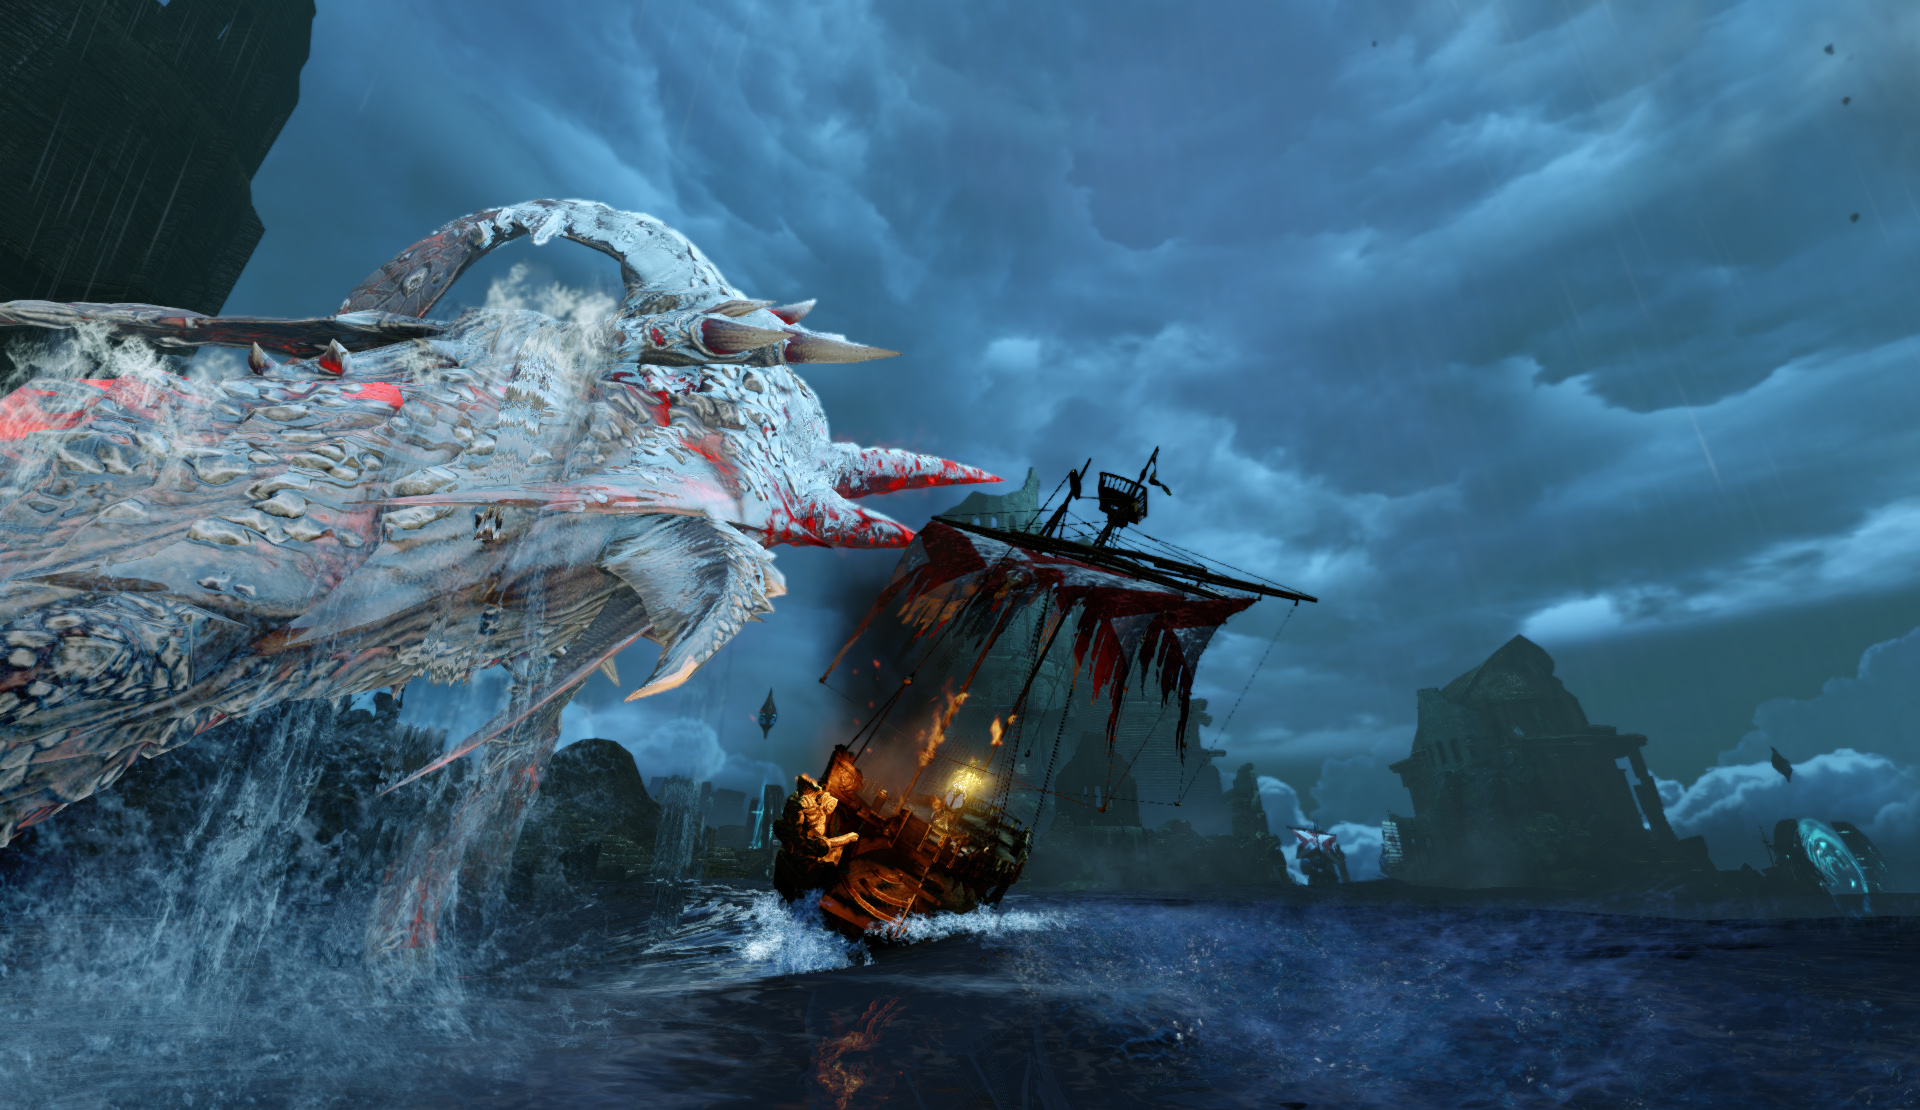 Interview: ArcheAge's 4 0 Maelstrom launches December 13 with